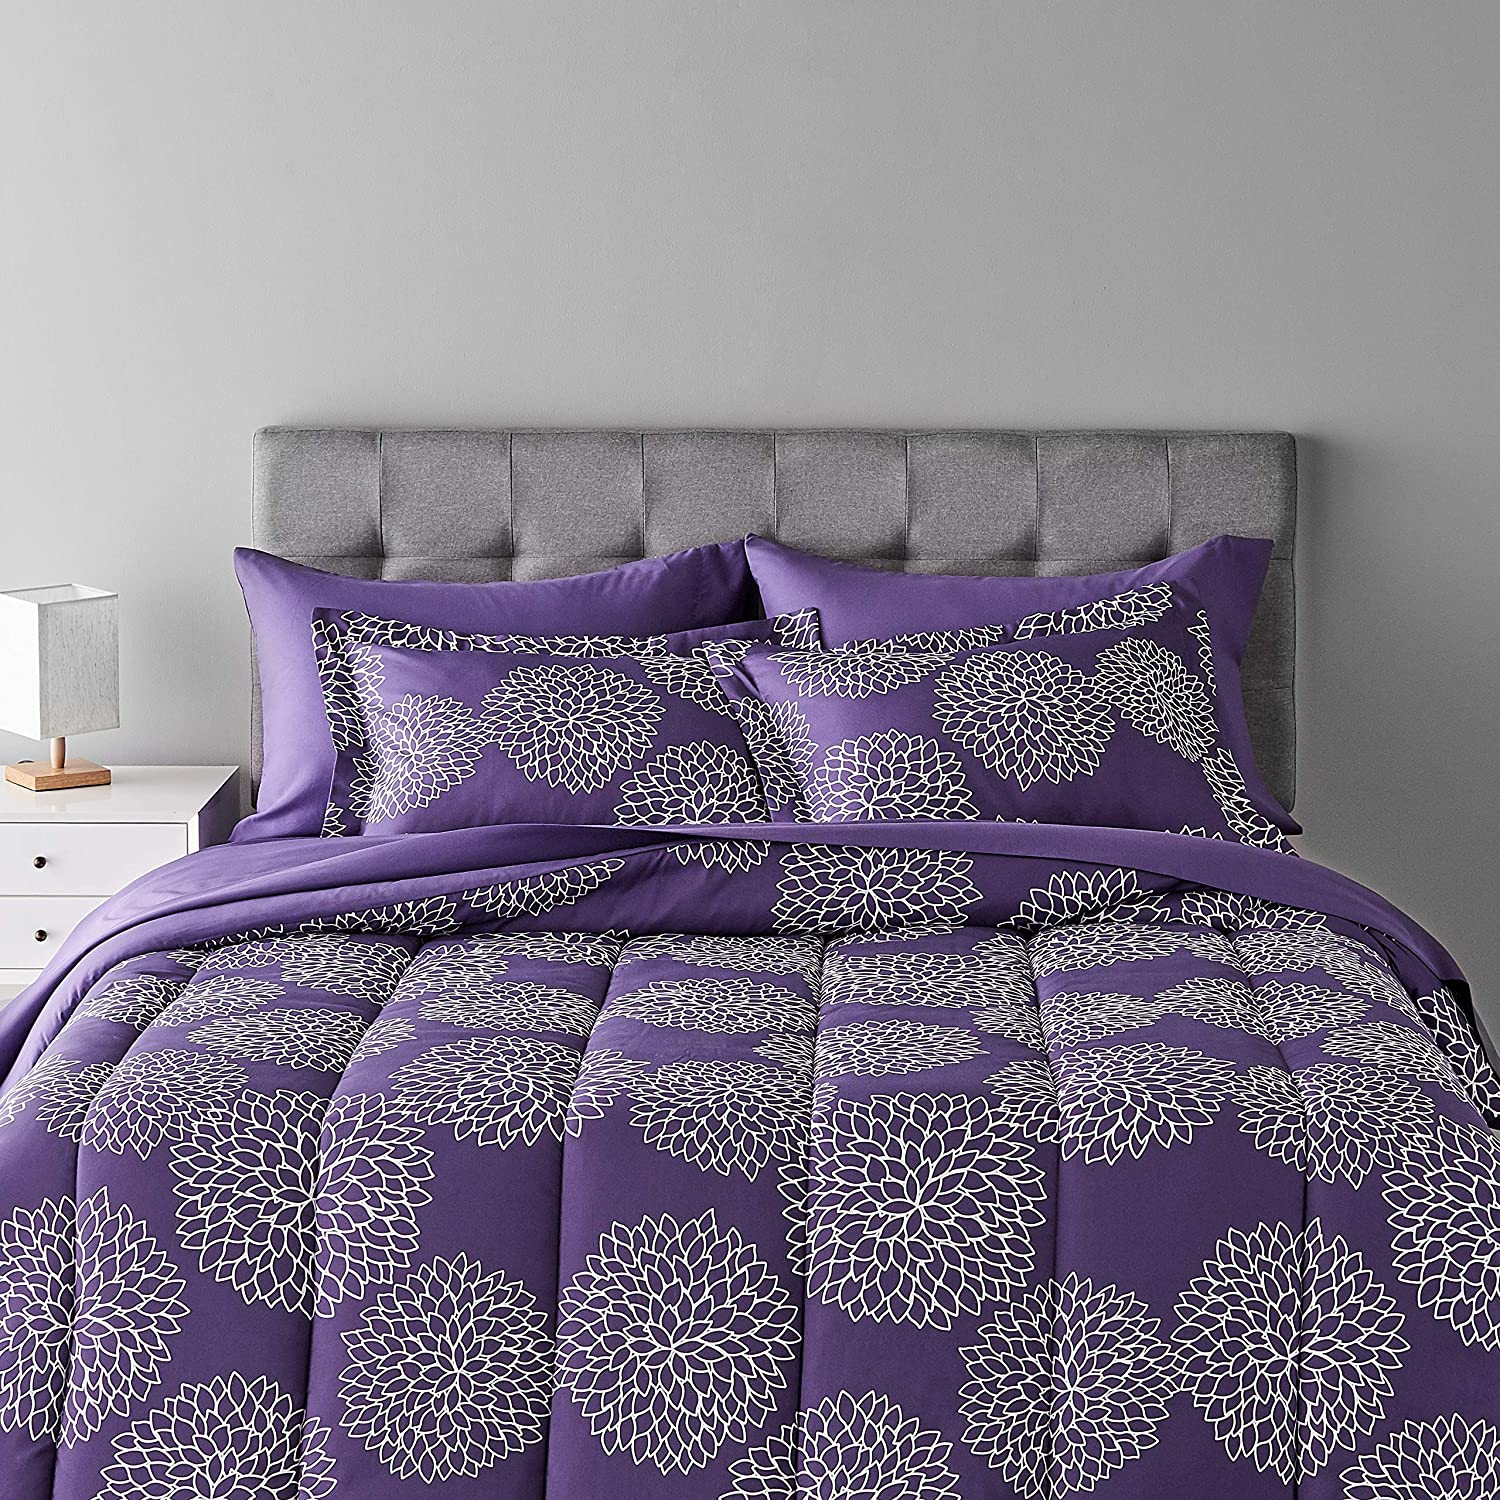 Amazon Basics 7-Piece Bed-In-A-Bag Comforter Bedding Set - Full or Queen, Purple Floral, Microfiber, Ultra-Soft